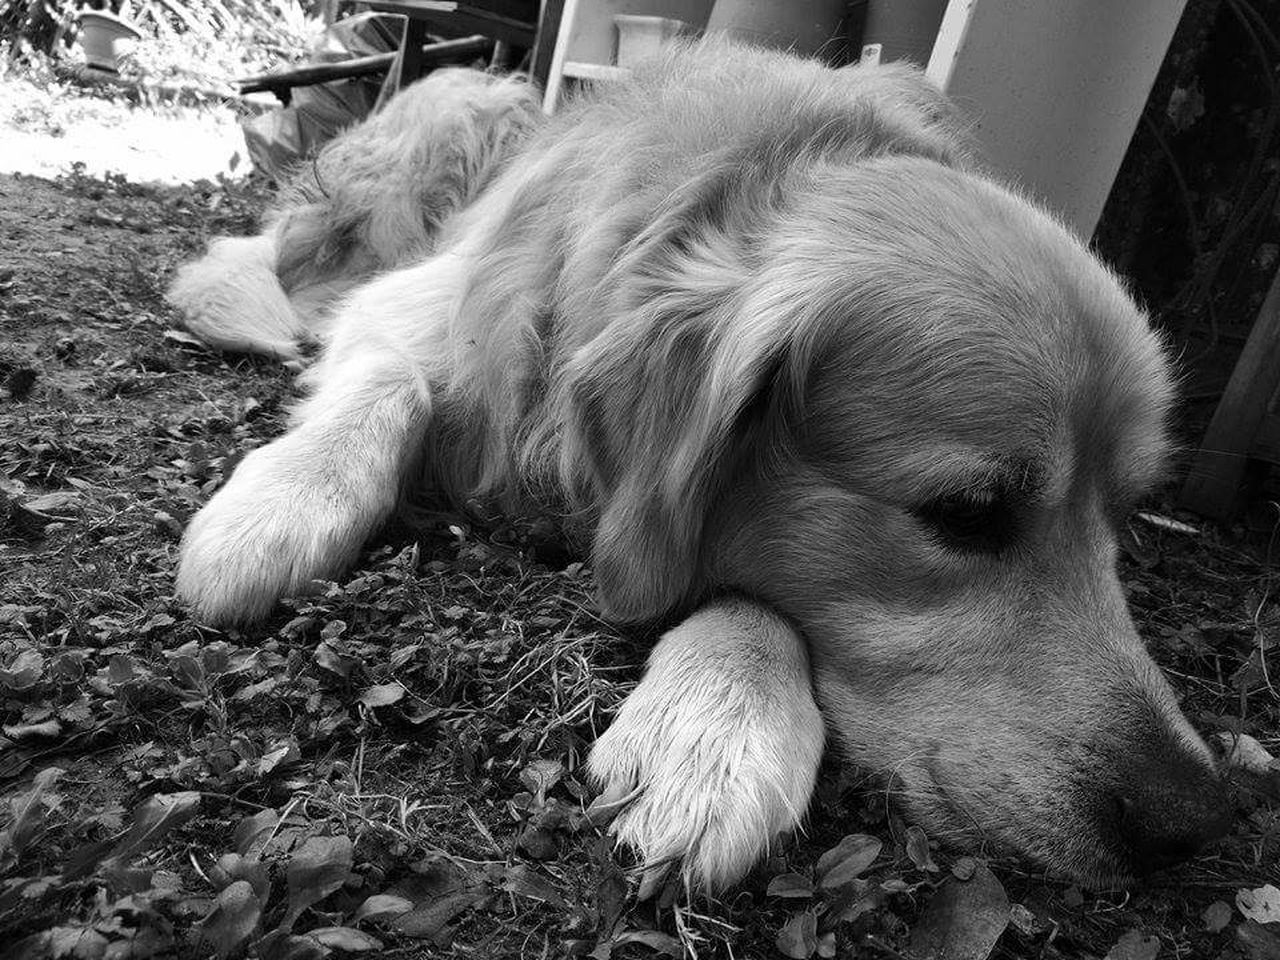 dog, pets, domestic animals, animal themes, mammal, one animal, close-up, no people, day, outdoors